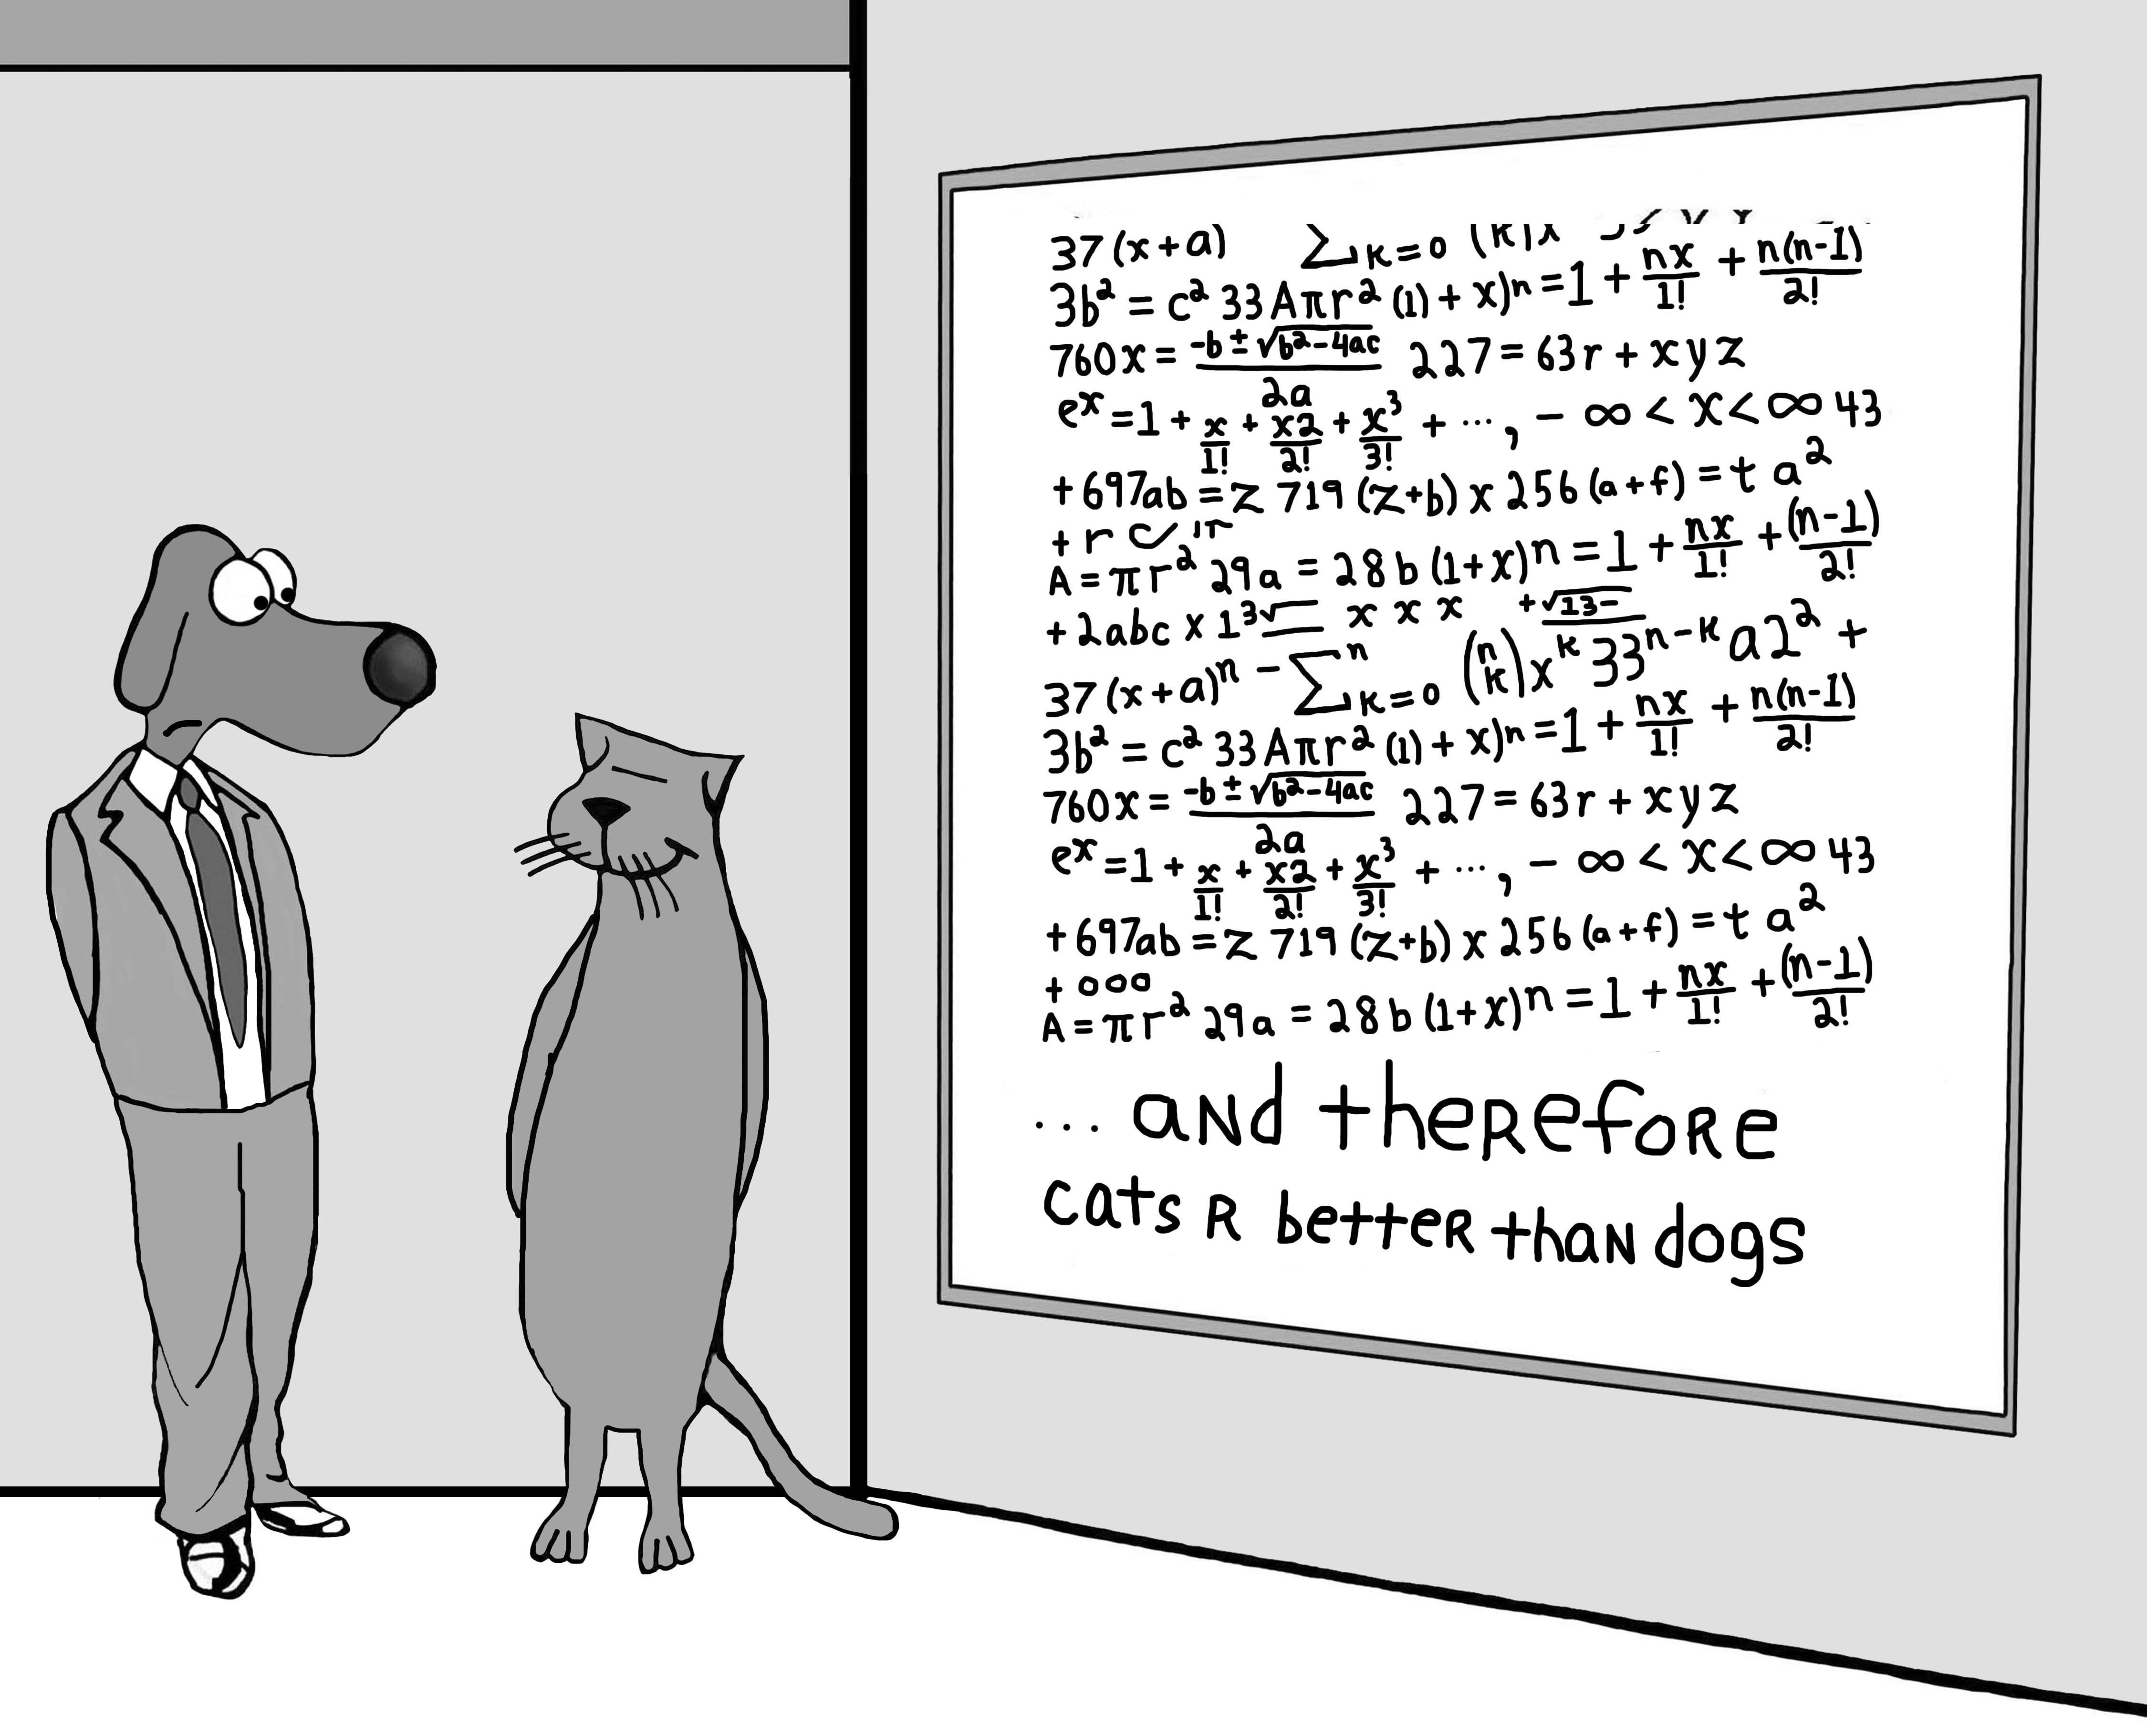 Animal, education and business cartoon of a dog, cat and whiteboard filled with complex equations, 'and therefore cats r better than dogs'.